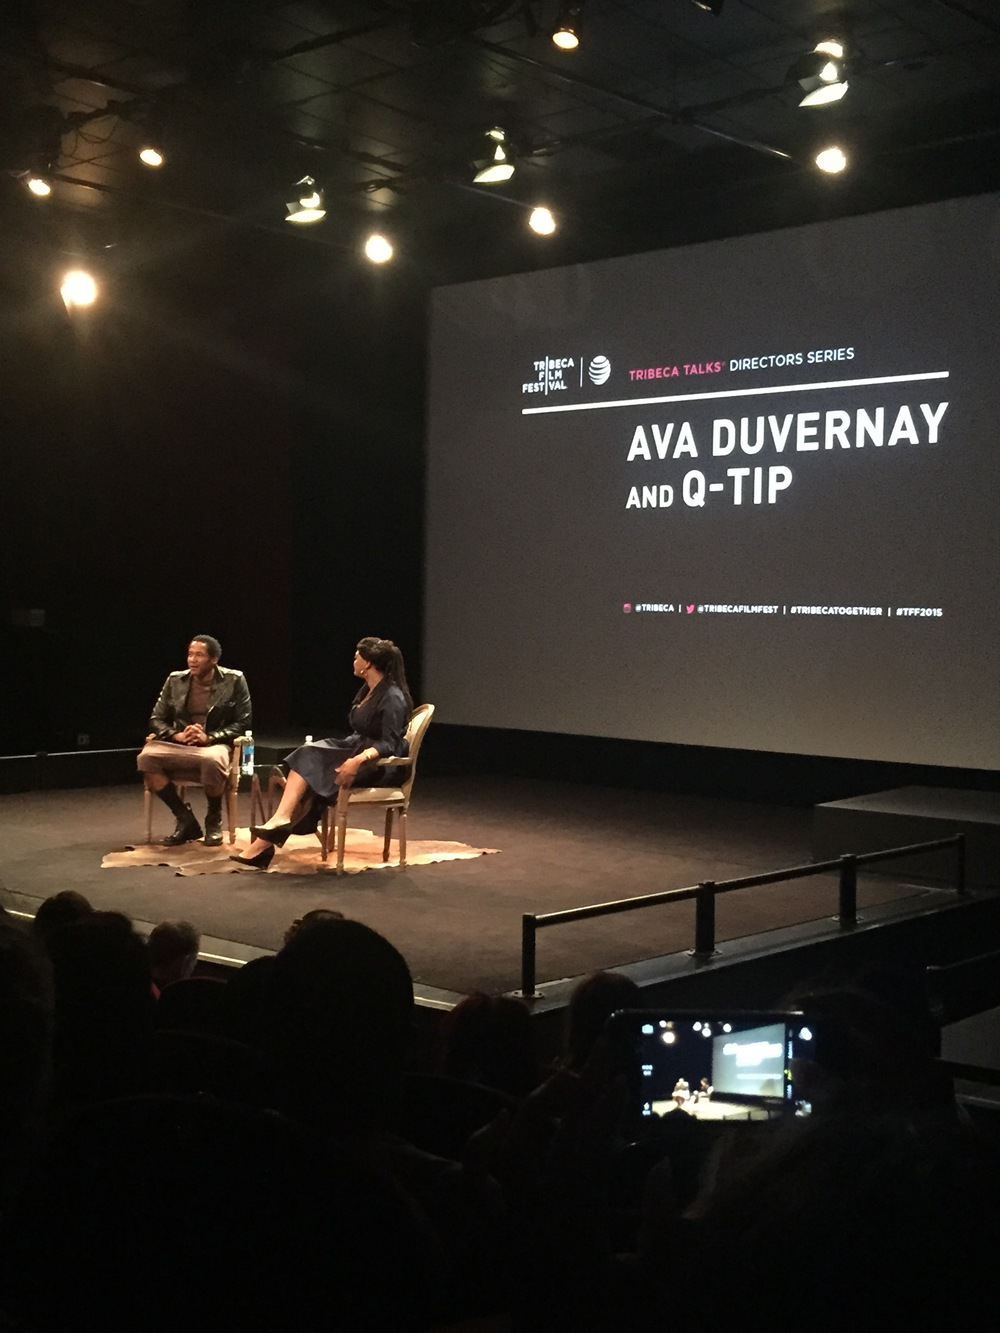 A lot of love from Ava Duvernay and Q-Tip. She came straight from her flight from LA to the venue for her panel!